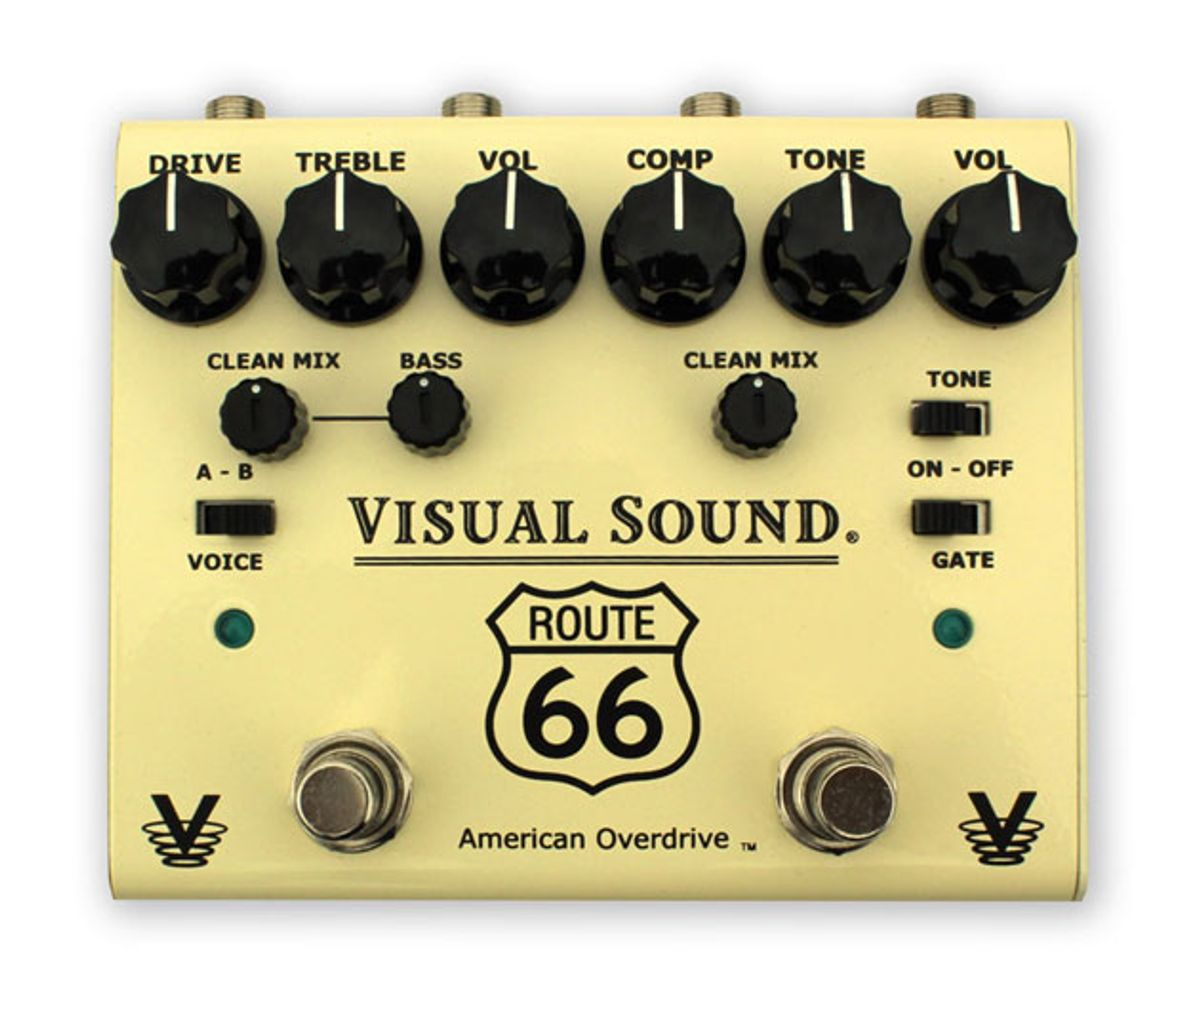 Visual Sound Unveils the V3 Route 66 American Overdrive